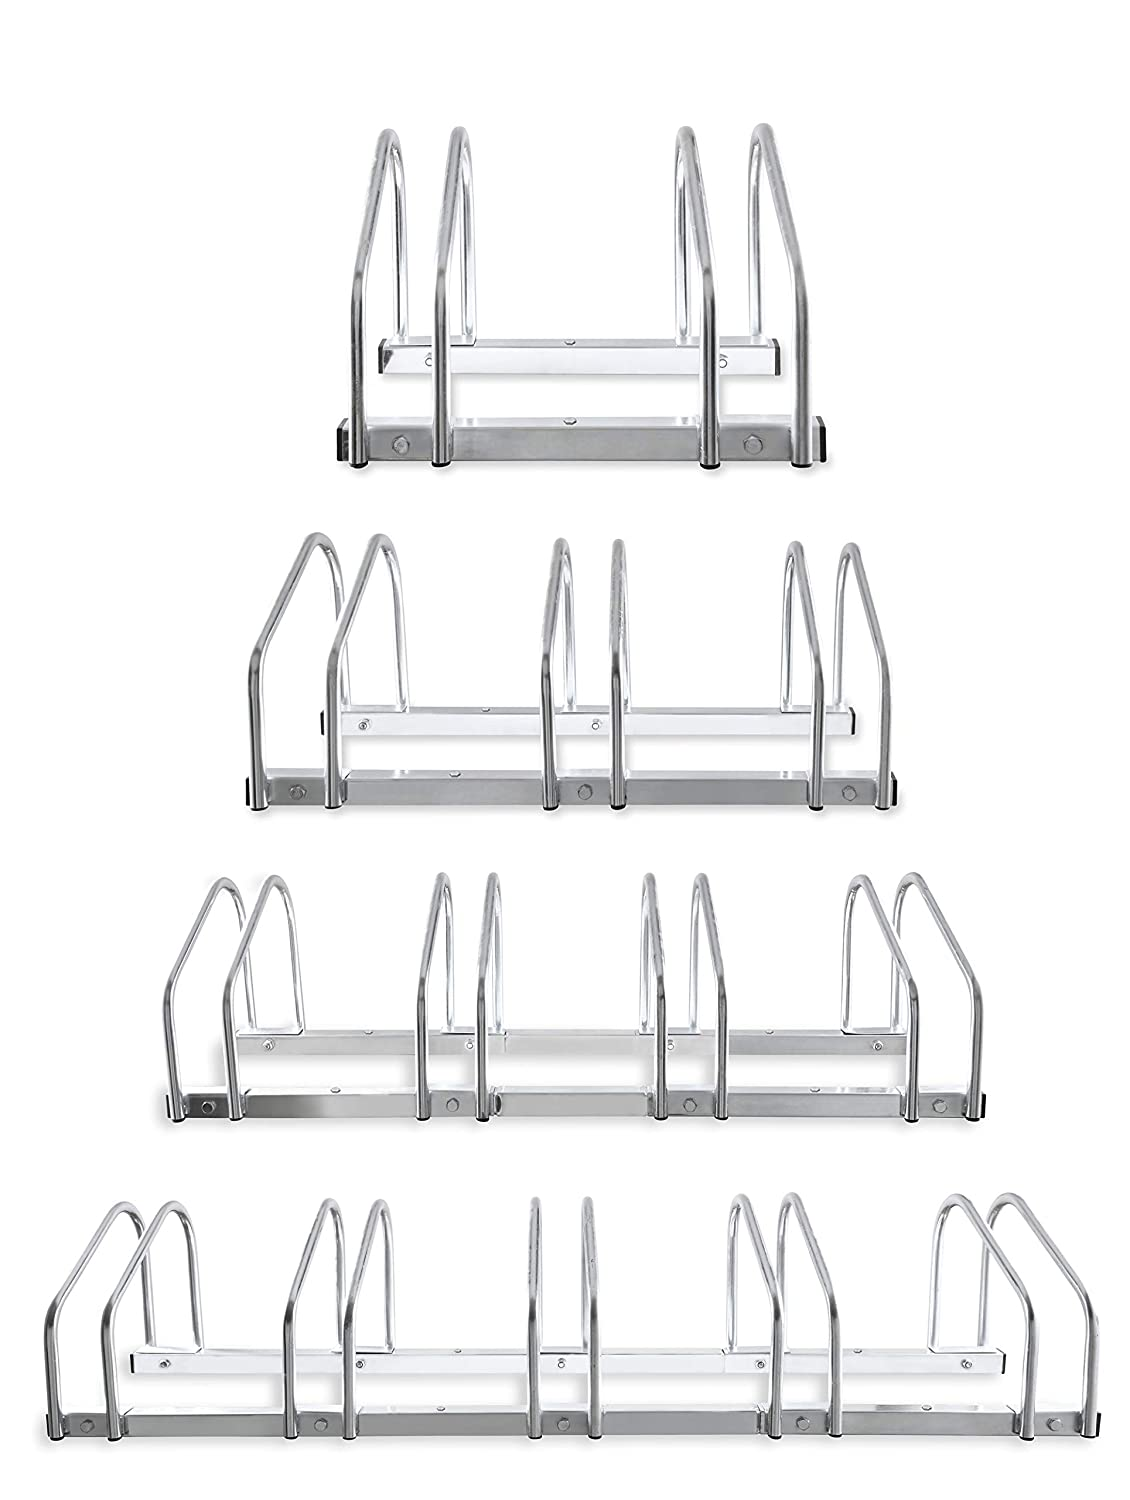 Hillington 2, 3, 4, 5 Bike Floor Or Wall Mount Bicycle/Galvanised Cycle Rack Storage Locking Stand Great For Garage, Garden Or Shed And For Security